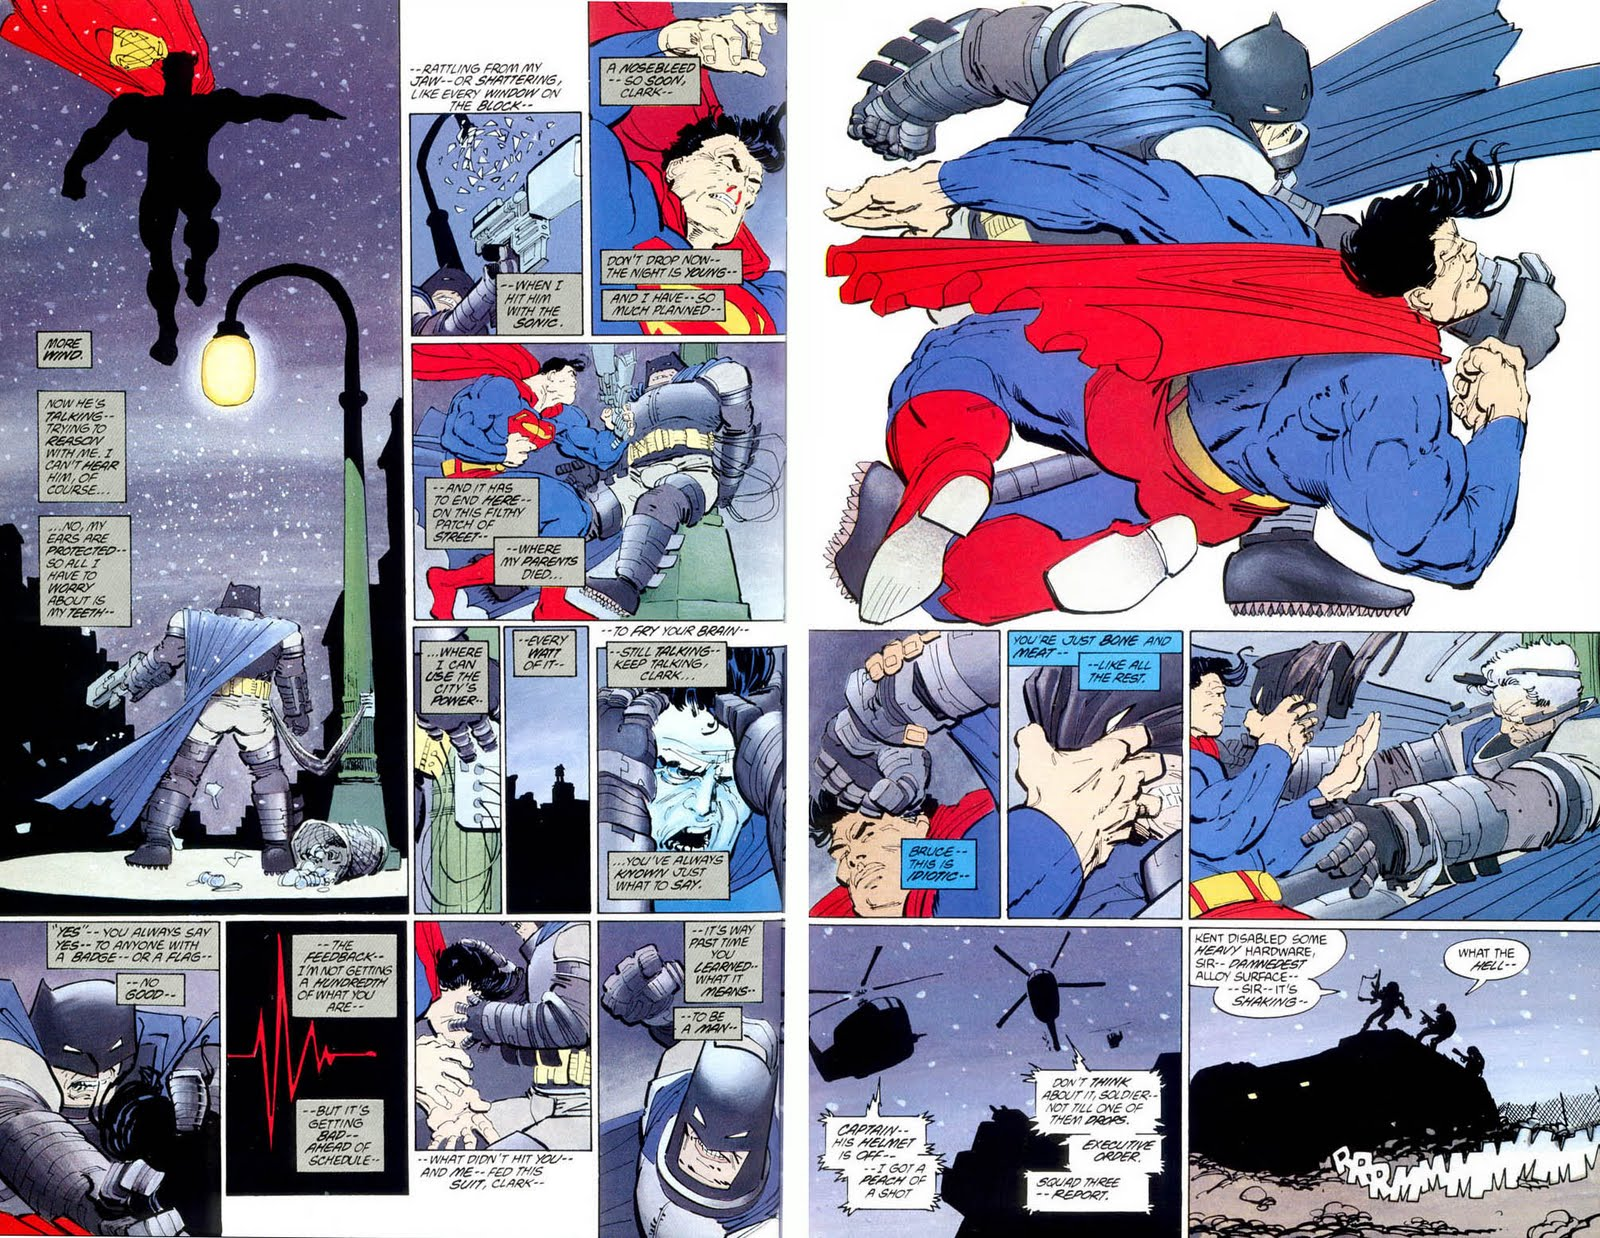 04-DKR-Superman-vs-Batman